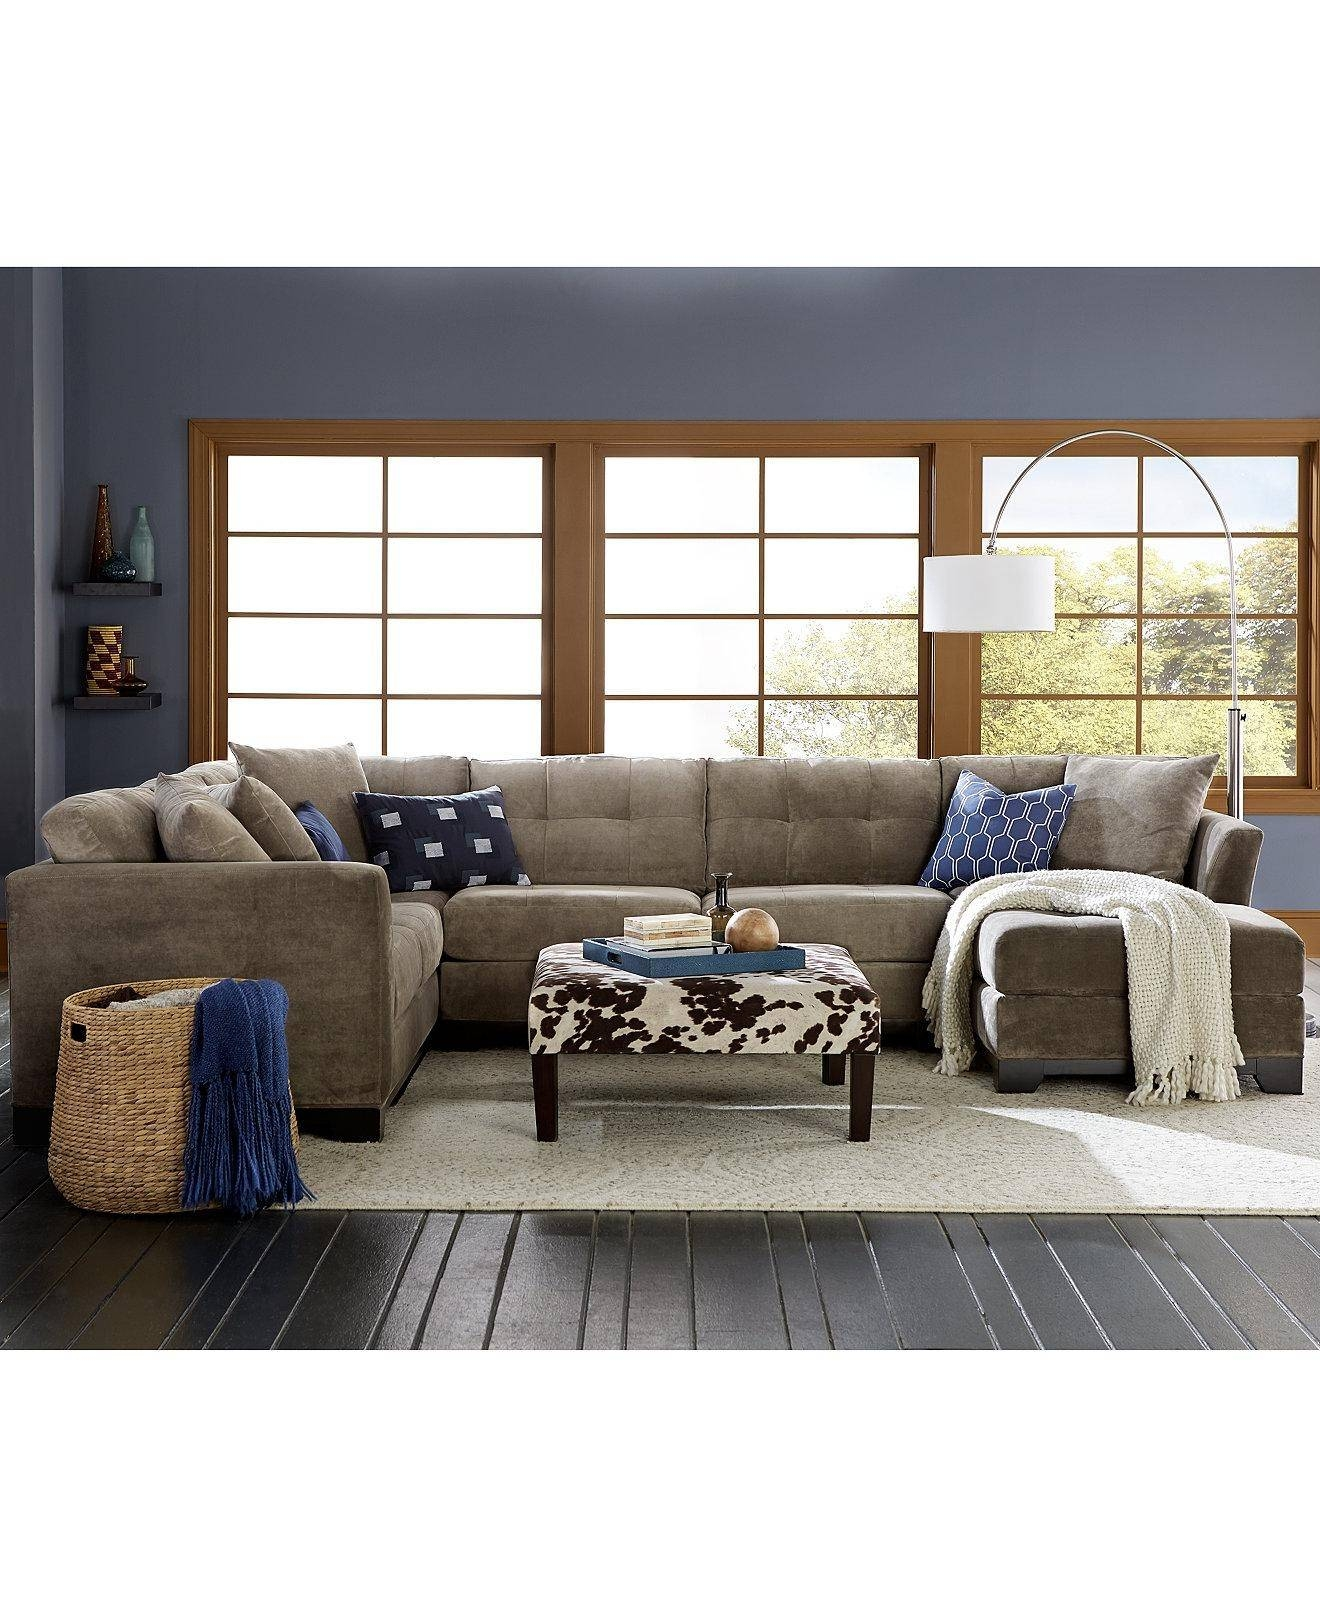 20 Best Ideas Craigslist Sectional Sofas | Sofa Ideas in Craigslist Sectional Sofas (Image 2 of 15)